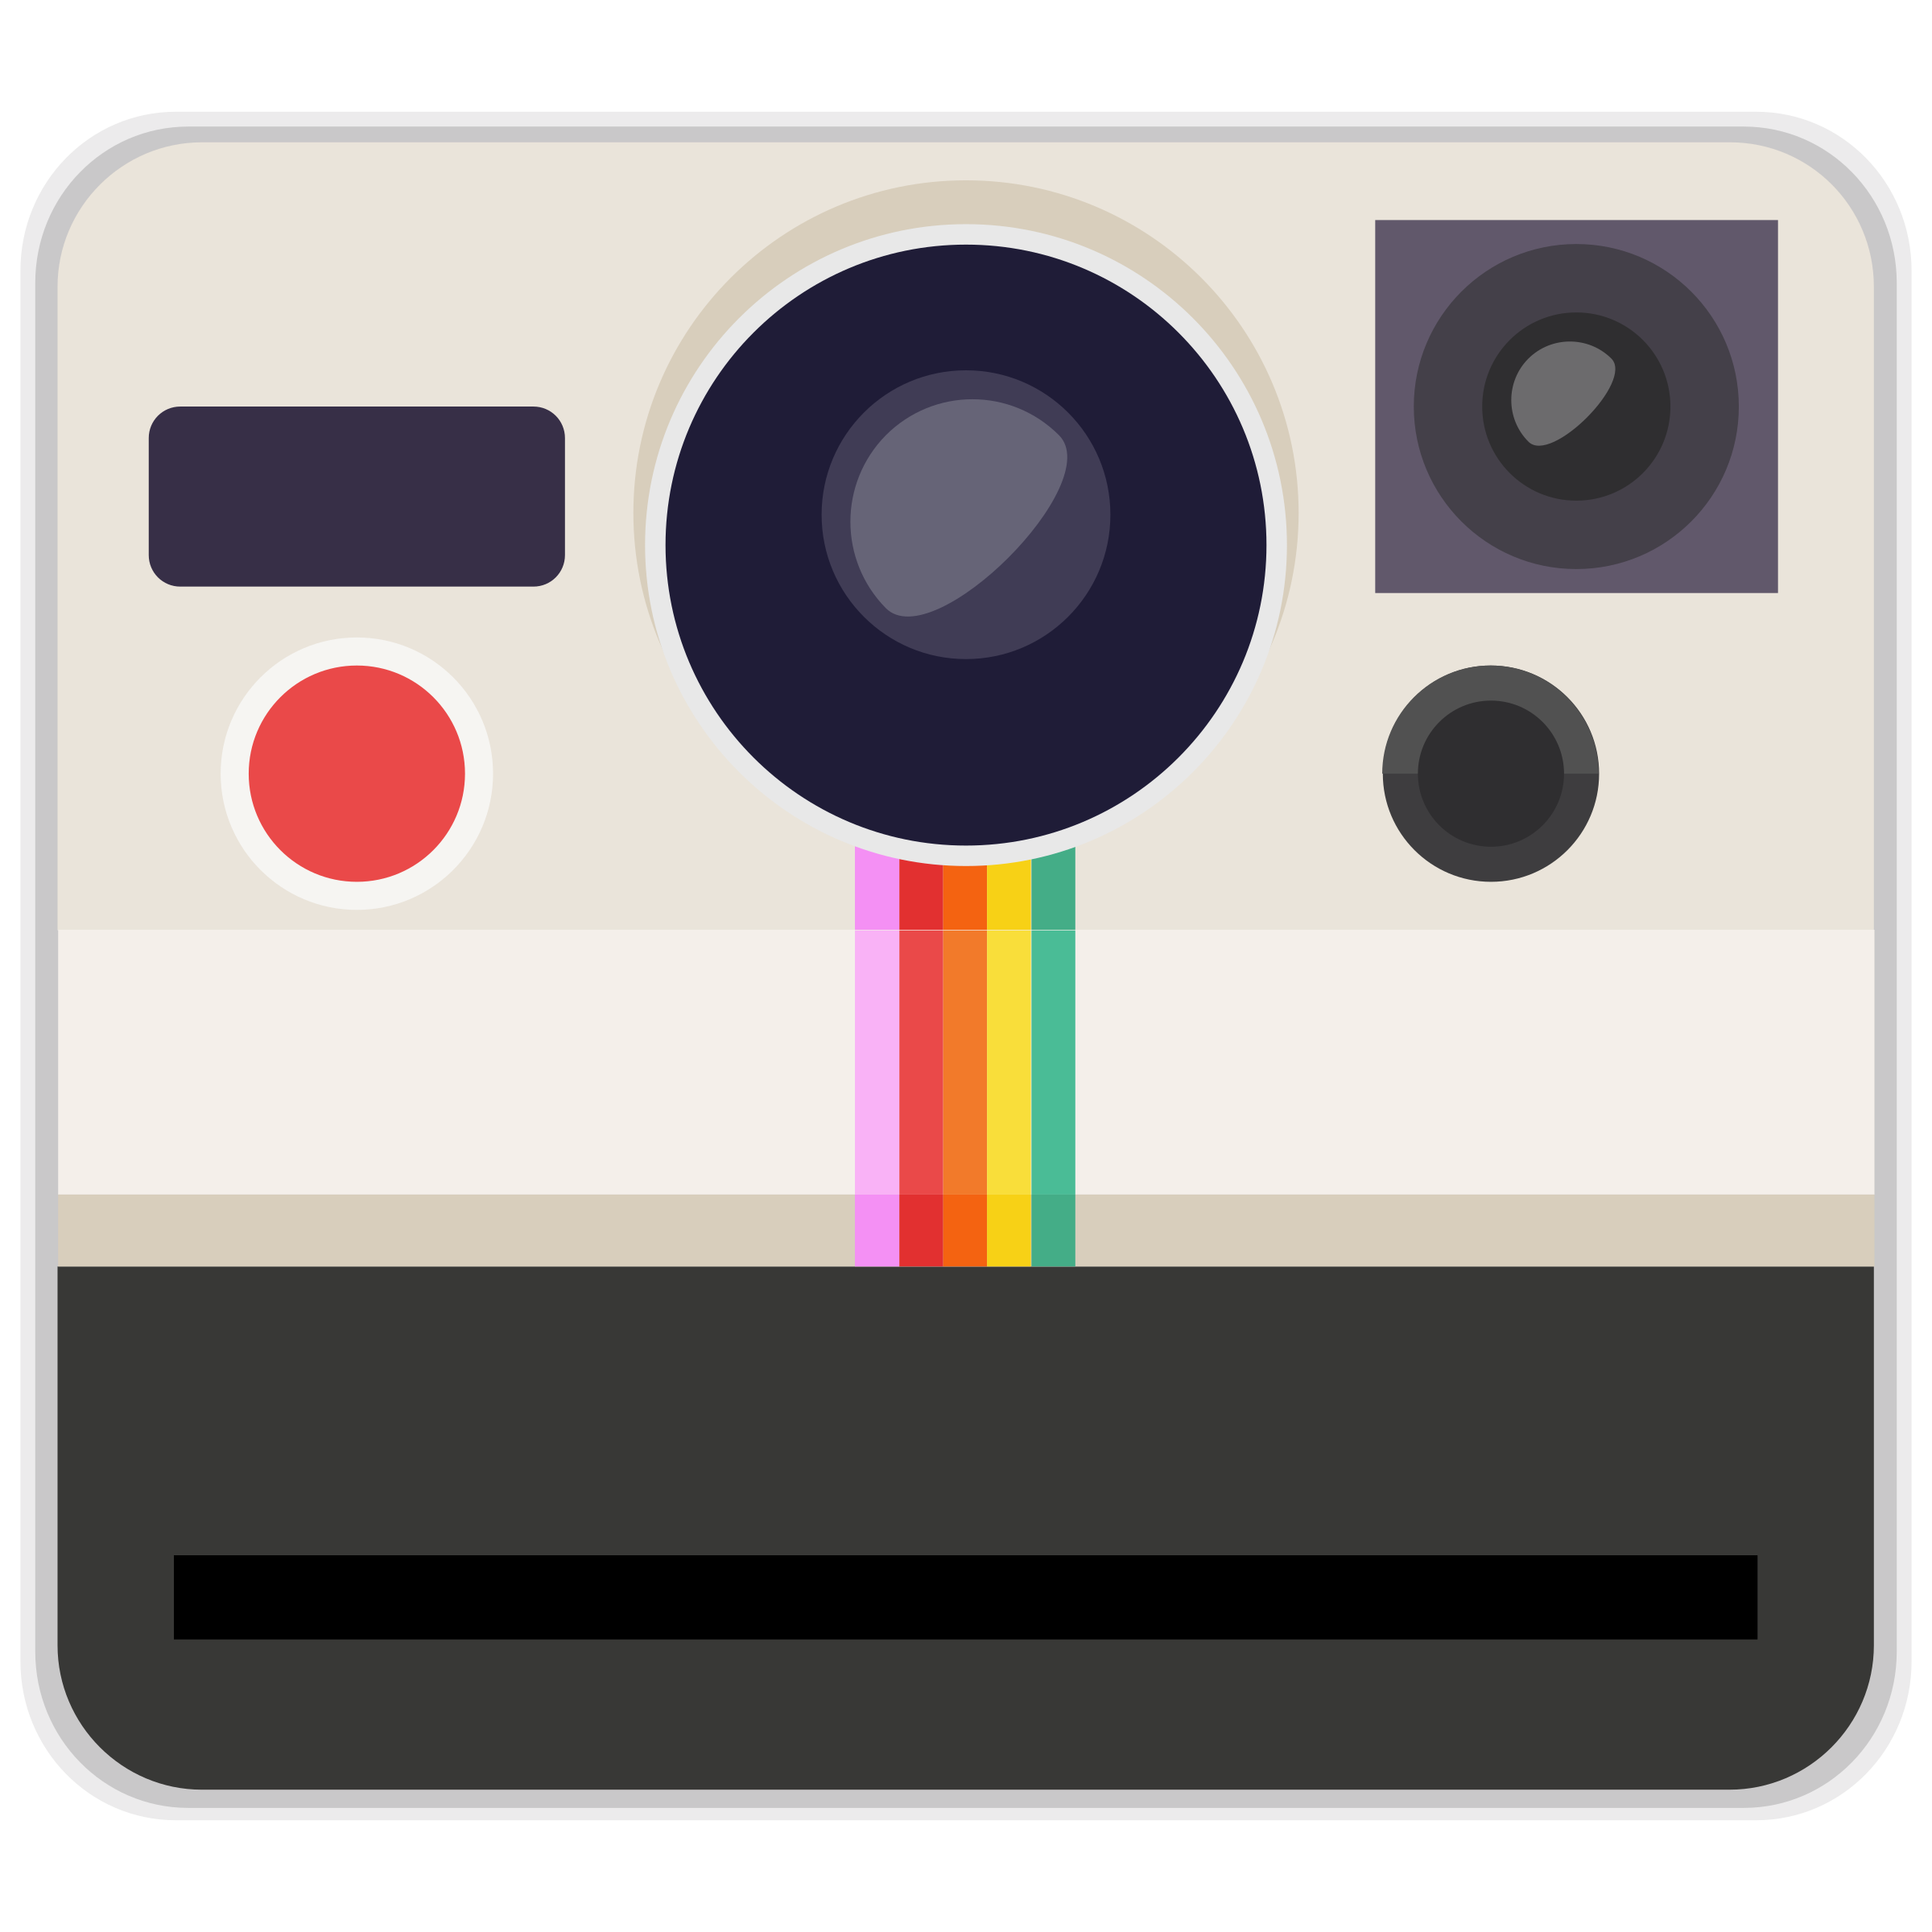 Square clipart camera. Roid big image png